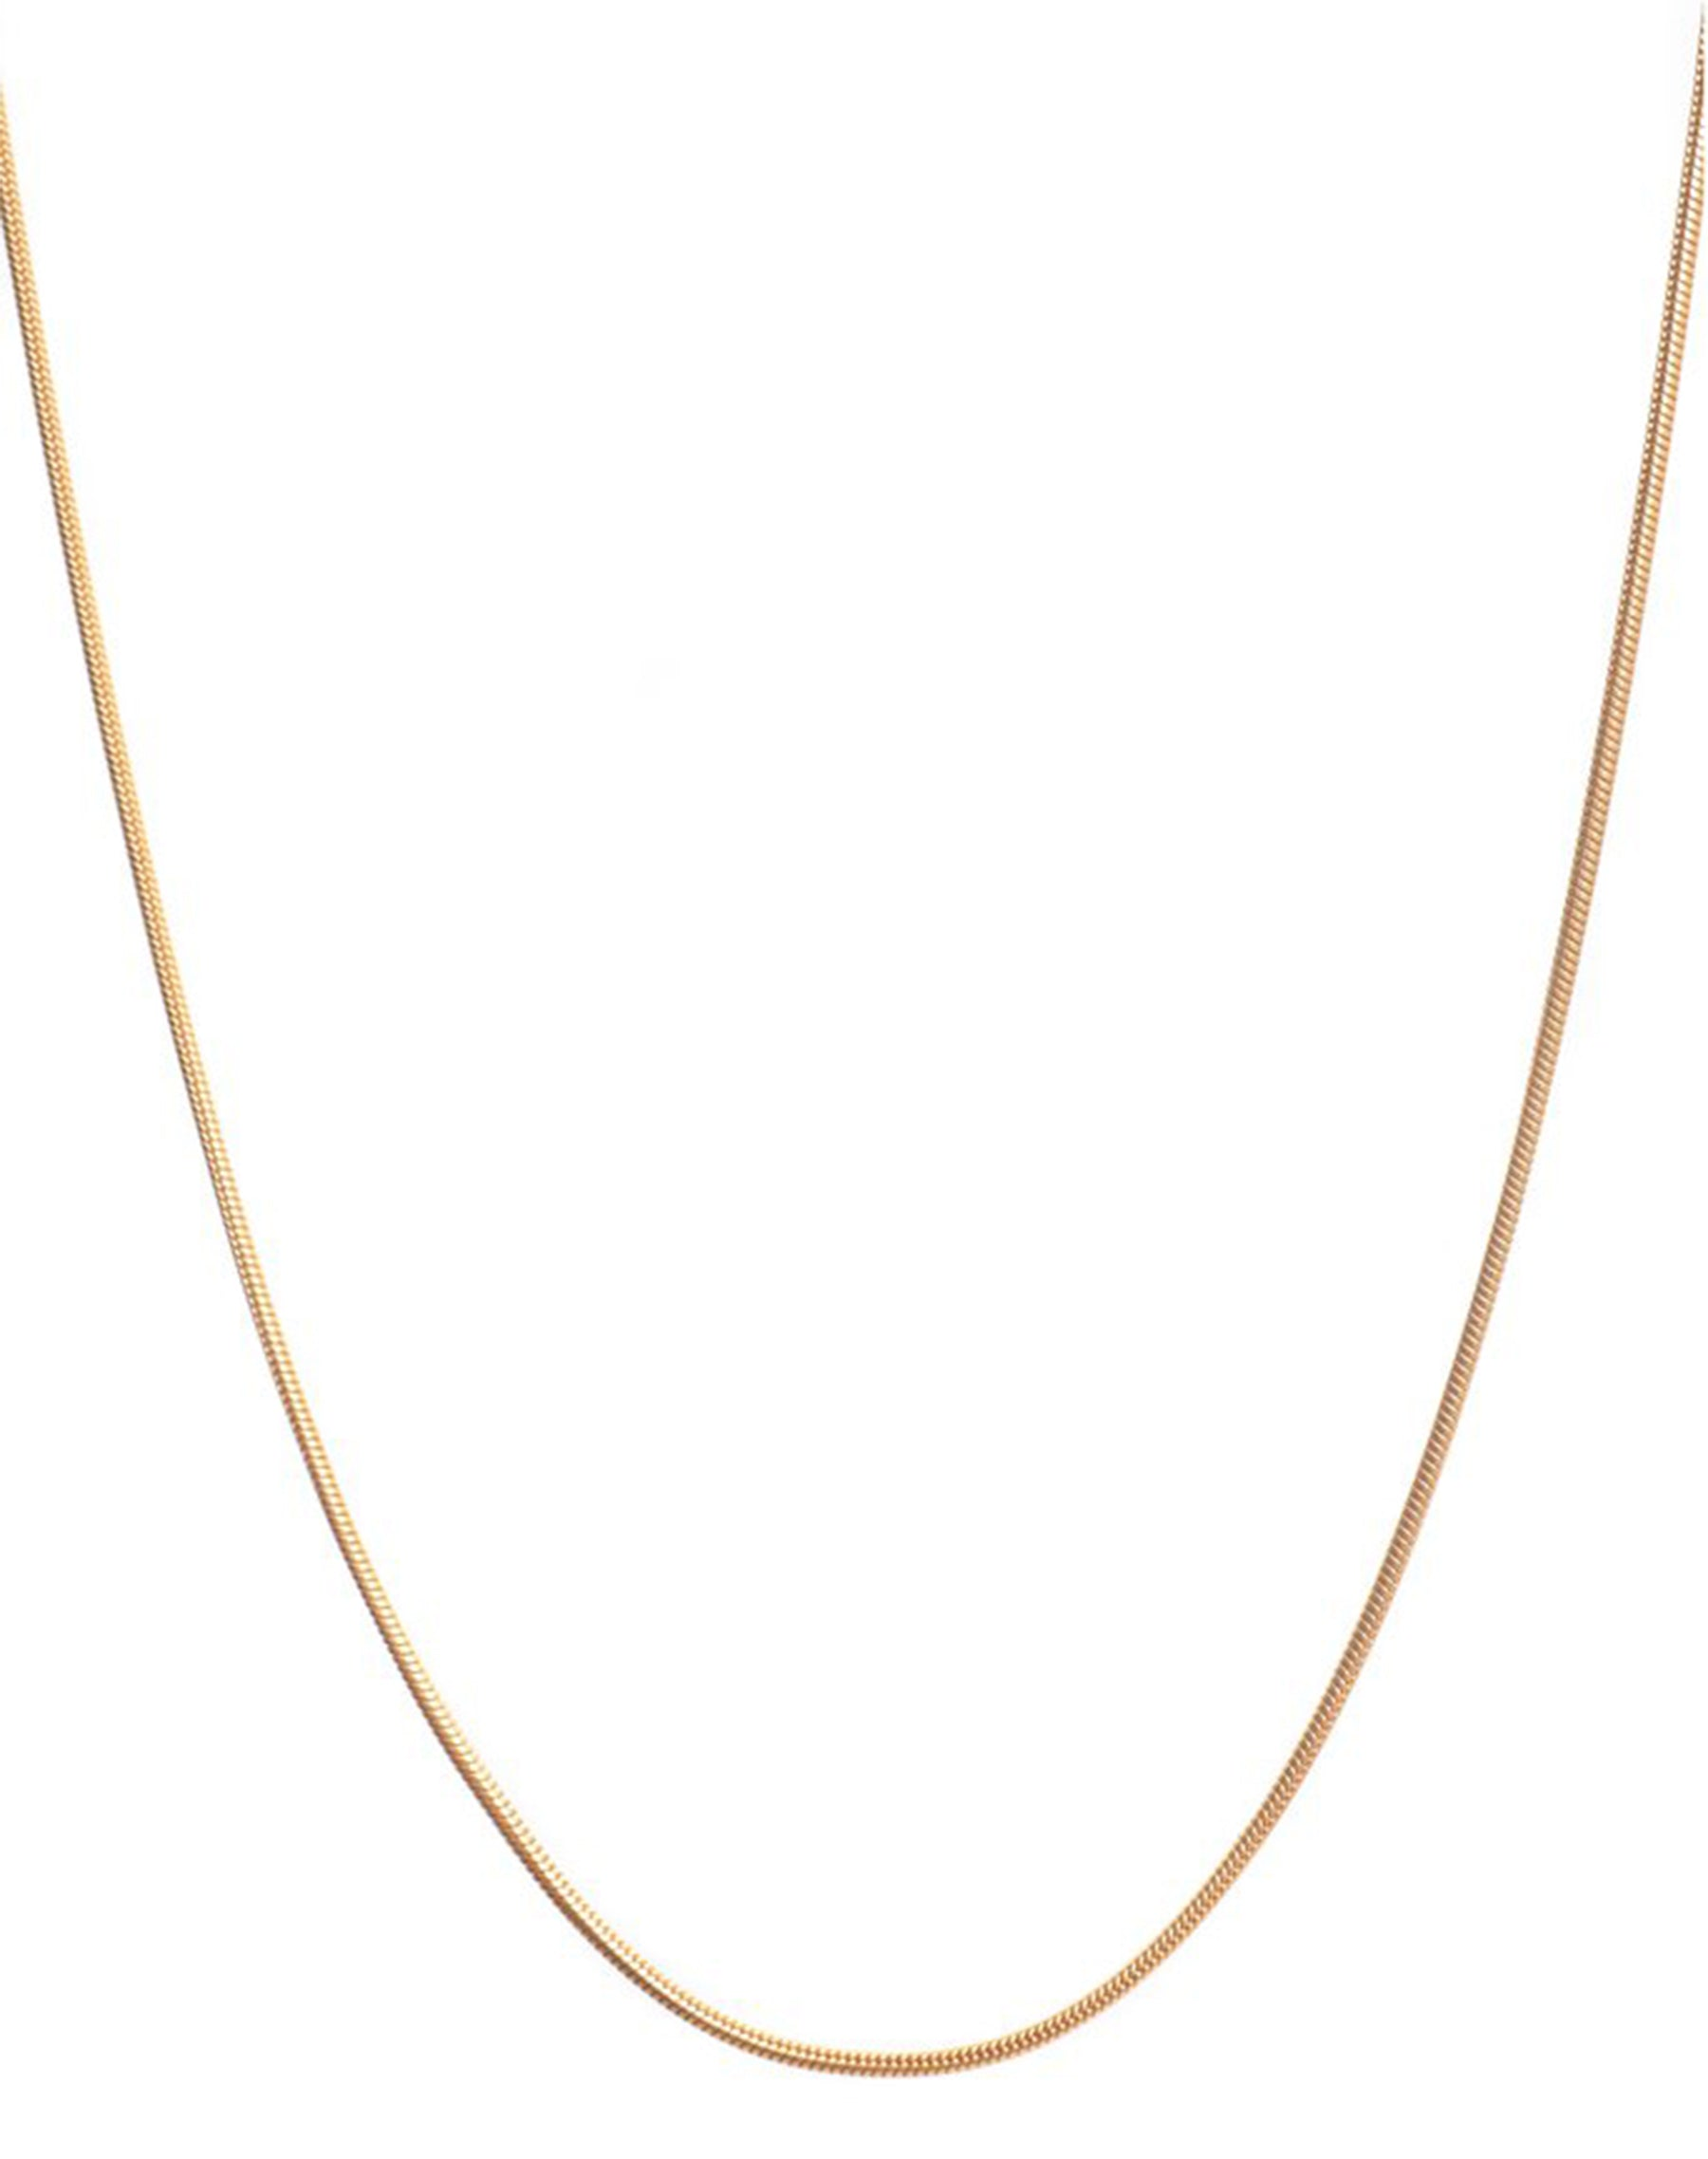 The 'DARIA' Necklace | Lisbeth